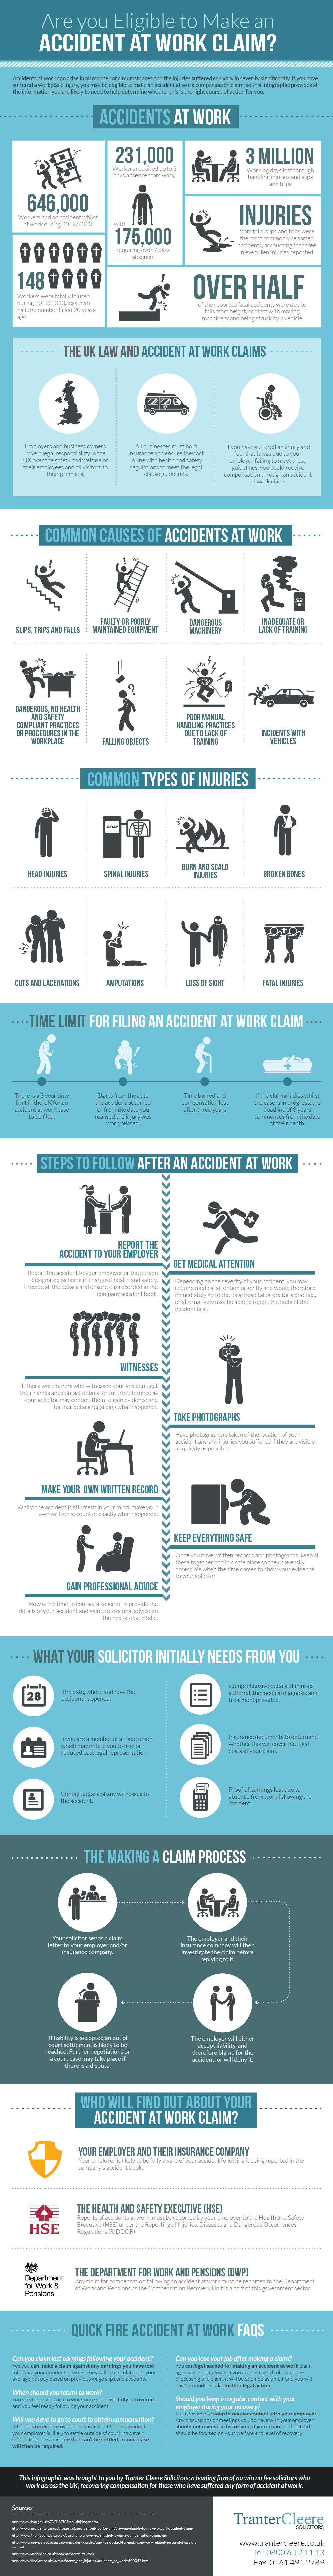 Are-You-Eligible-to-Make-an-Accident-at-Work-Claim-Infographic